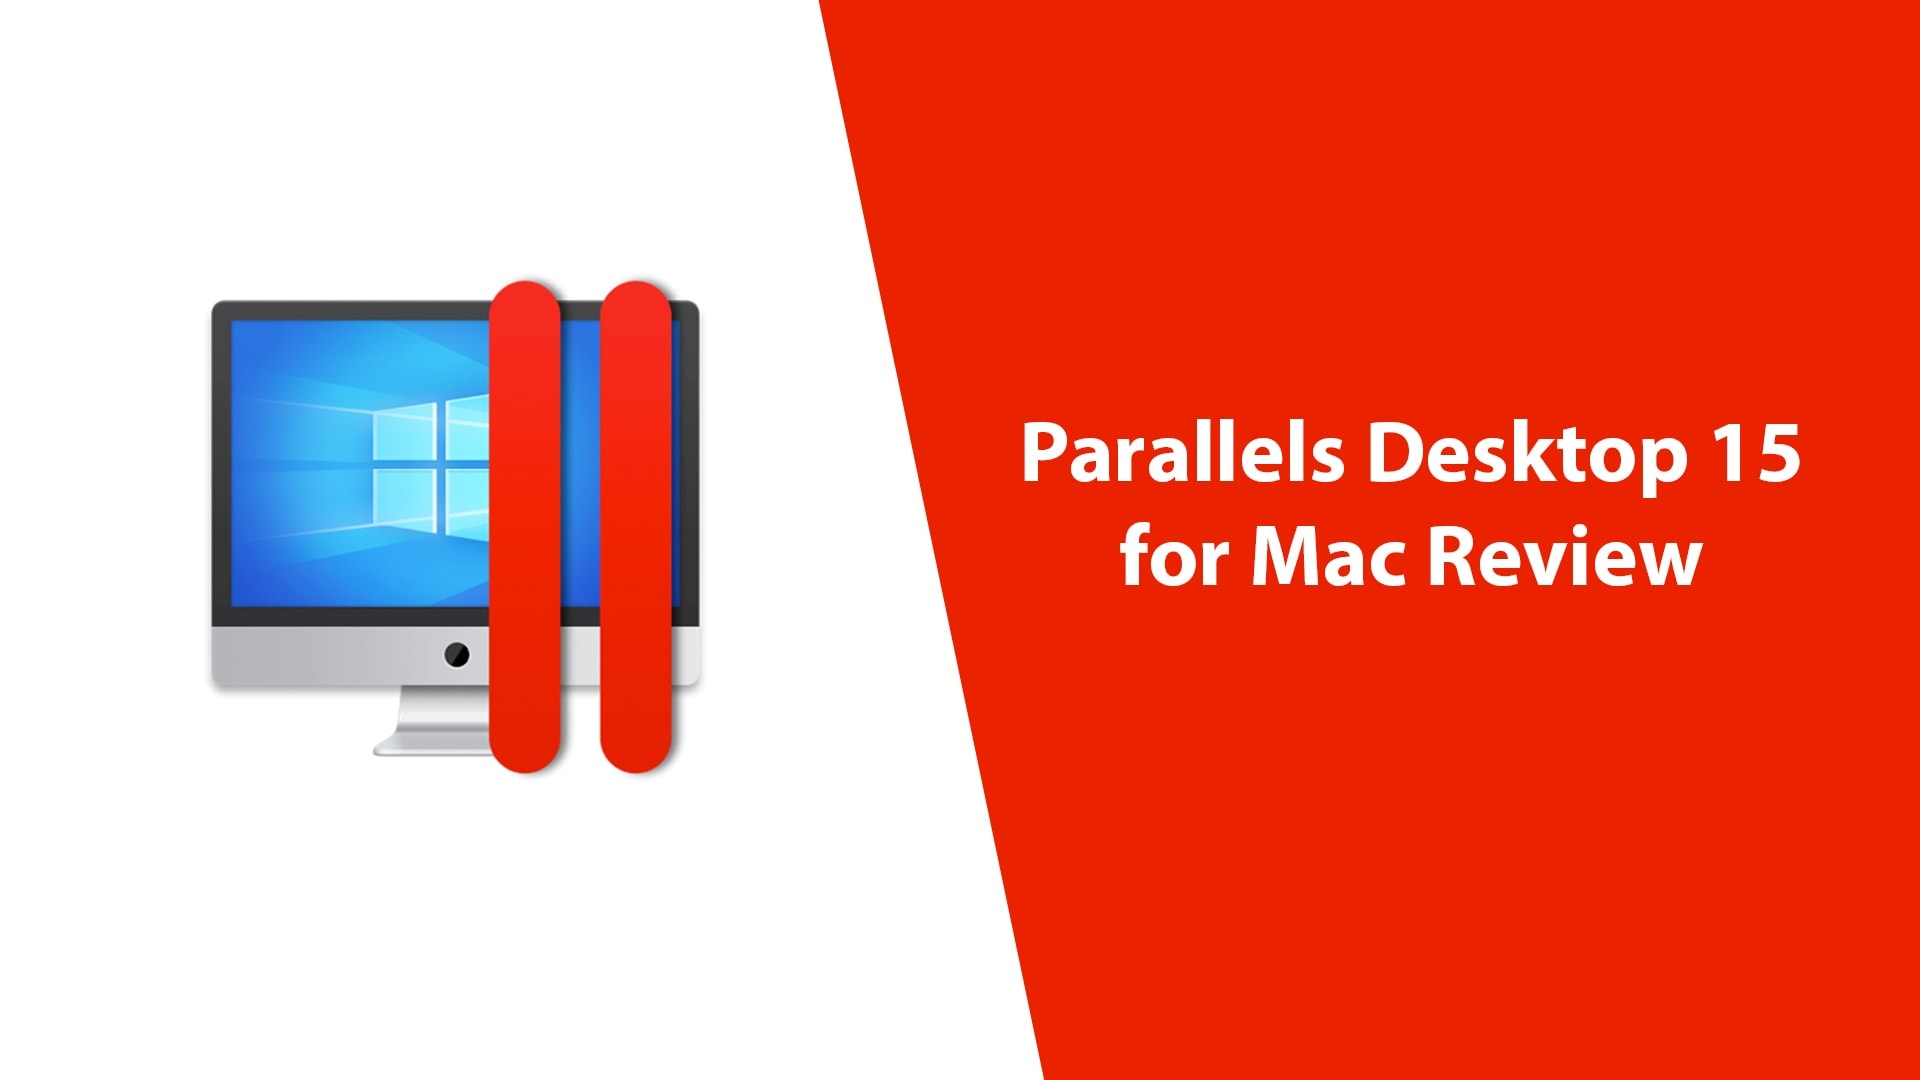 Parallels Desktop 15 for Mac Review in 2020